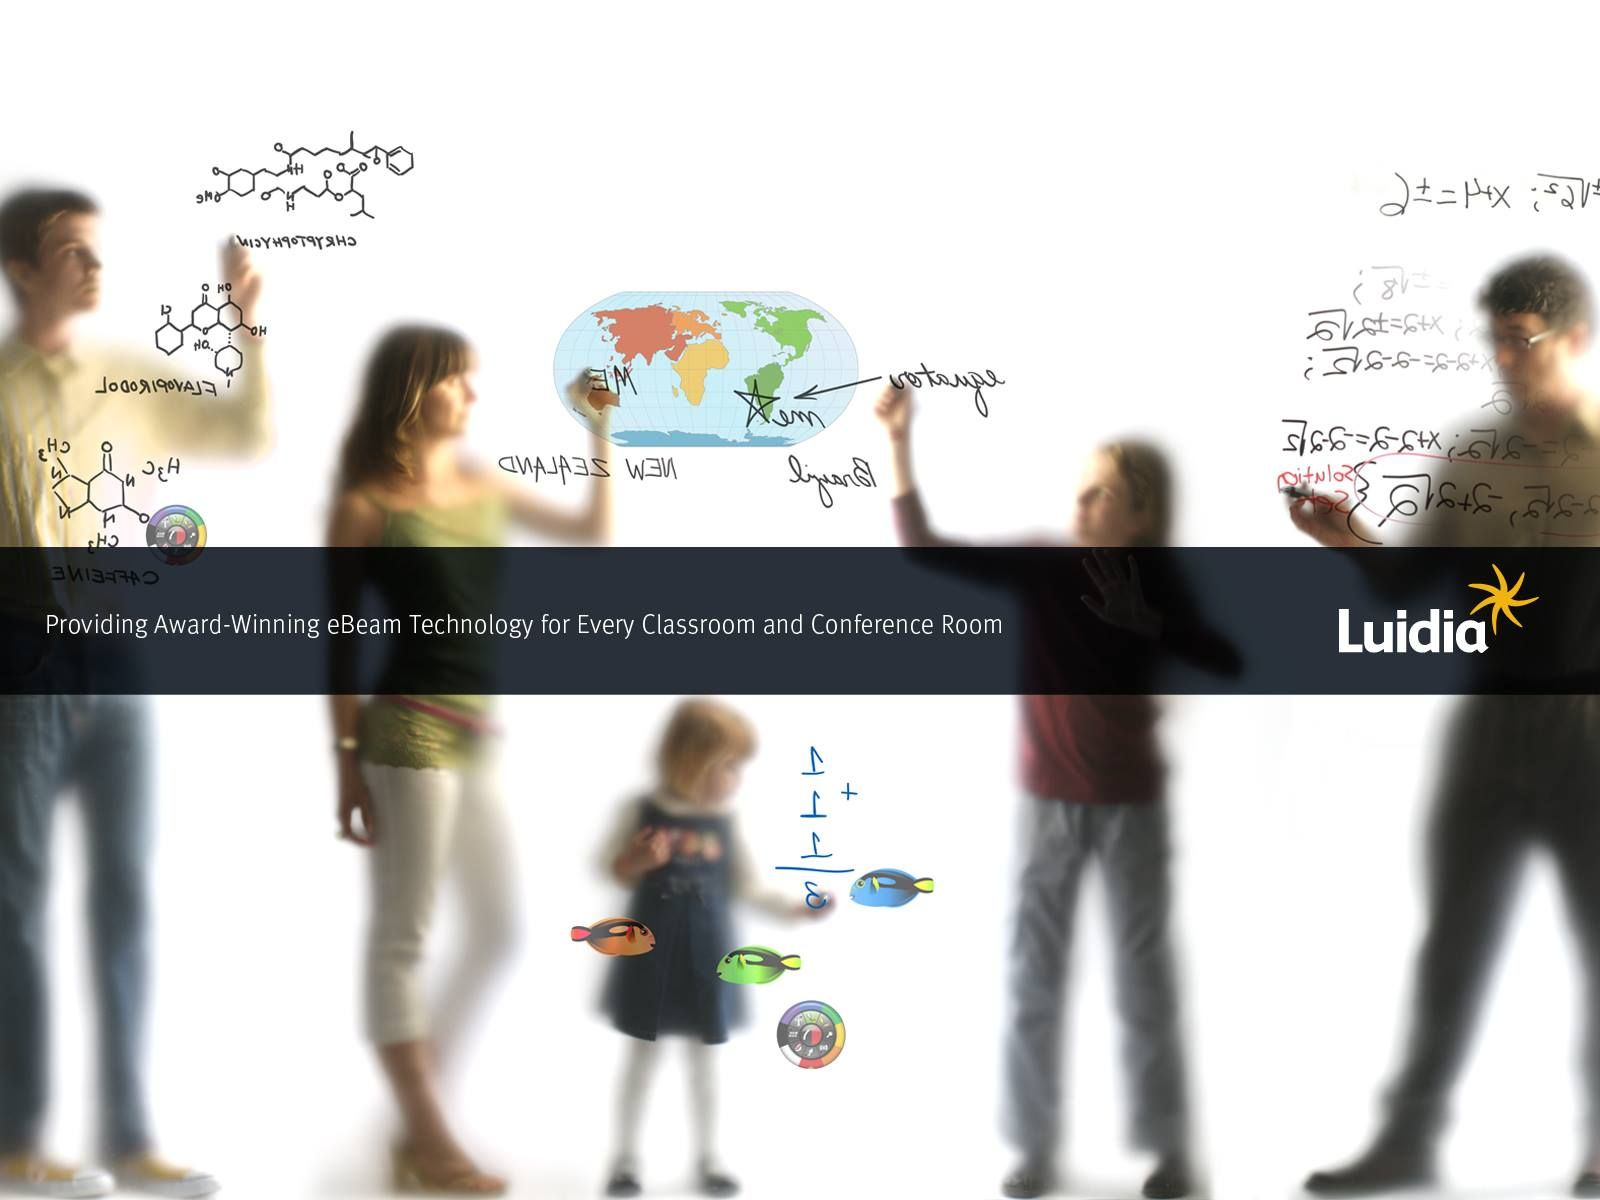 The most powerful interactive white boarding solution | eBeam Edge+ brings interactivity to any surface, quickly transforming your classroom or meeting room into a dynamic and fully interactive environment. http://www.e-beam.com/home.html